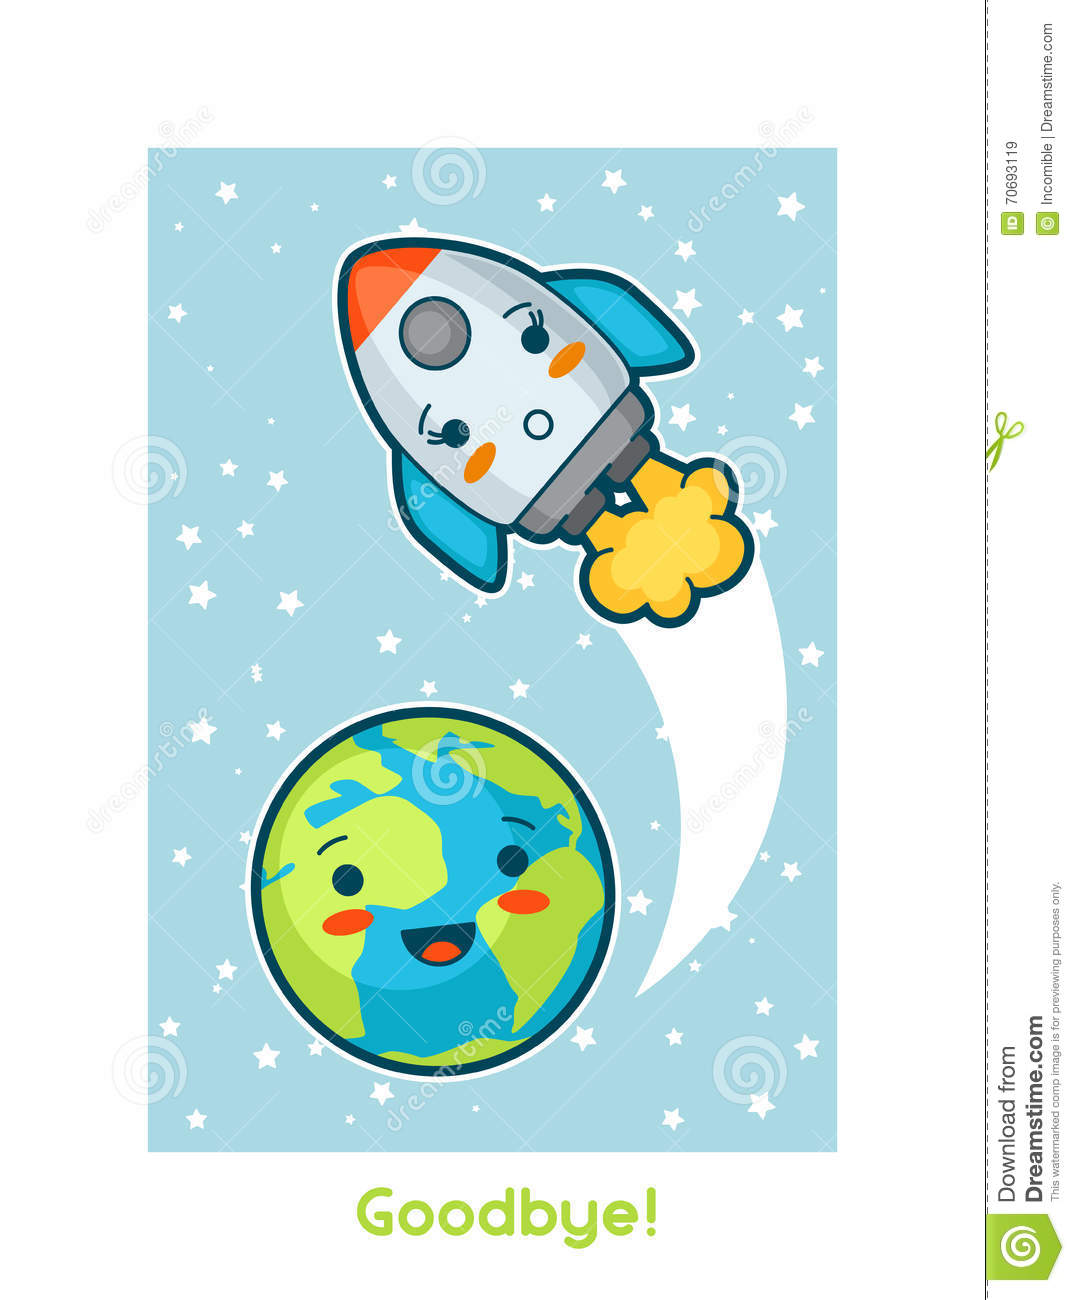 Girl Waving Cartoon Wallpaper Goodbye Kawaii Space Funny Card Doodles With Pretty